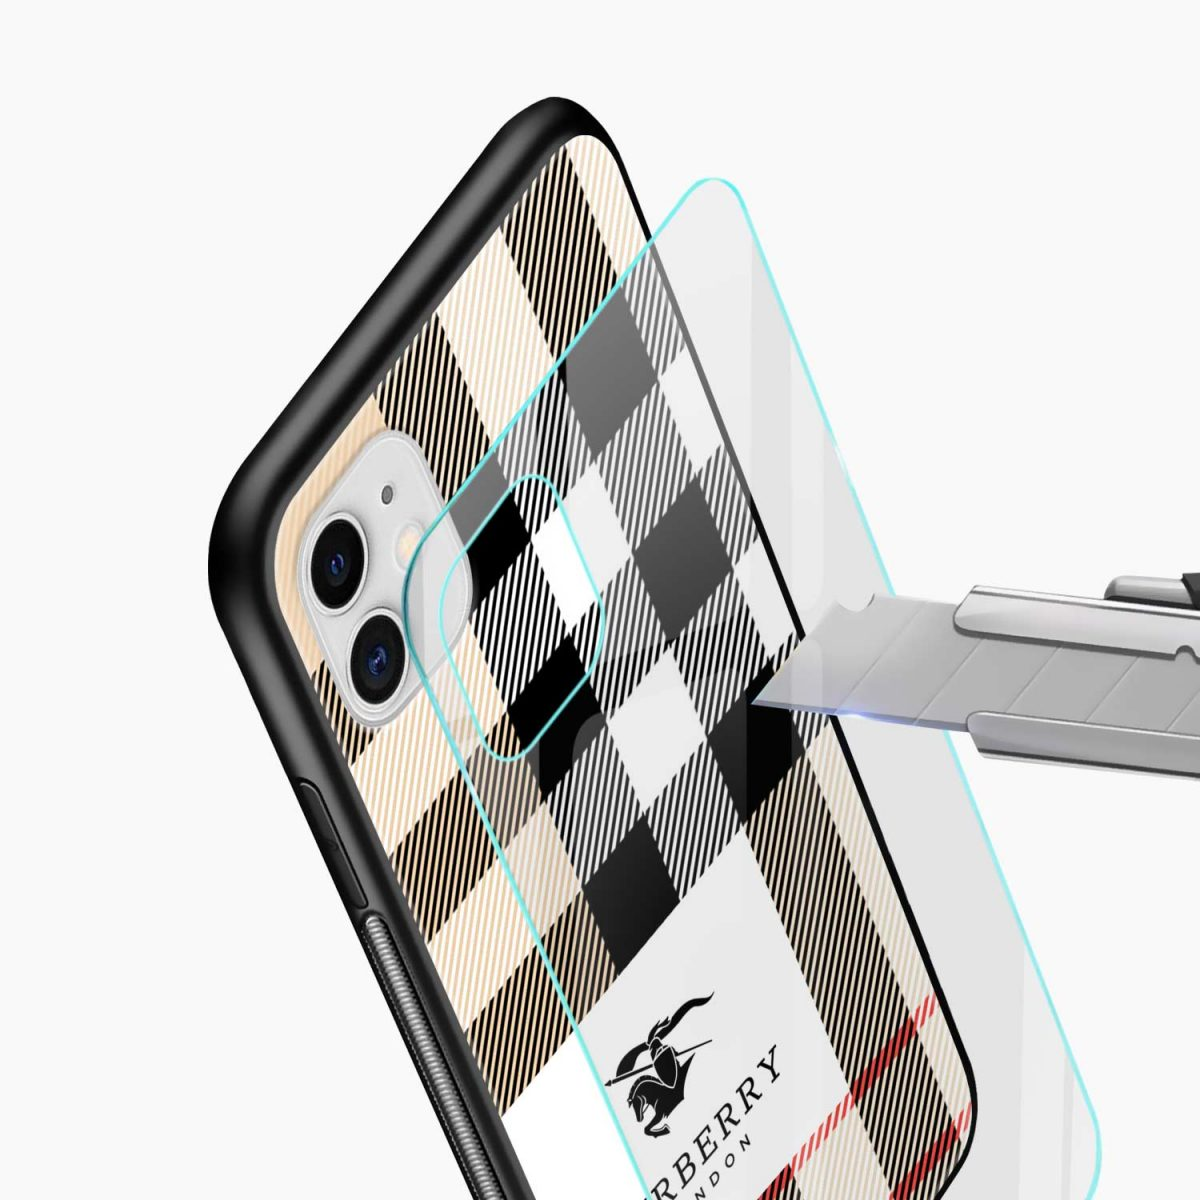 bulberry cross lines pattern iphone back cover glass view